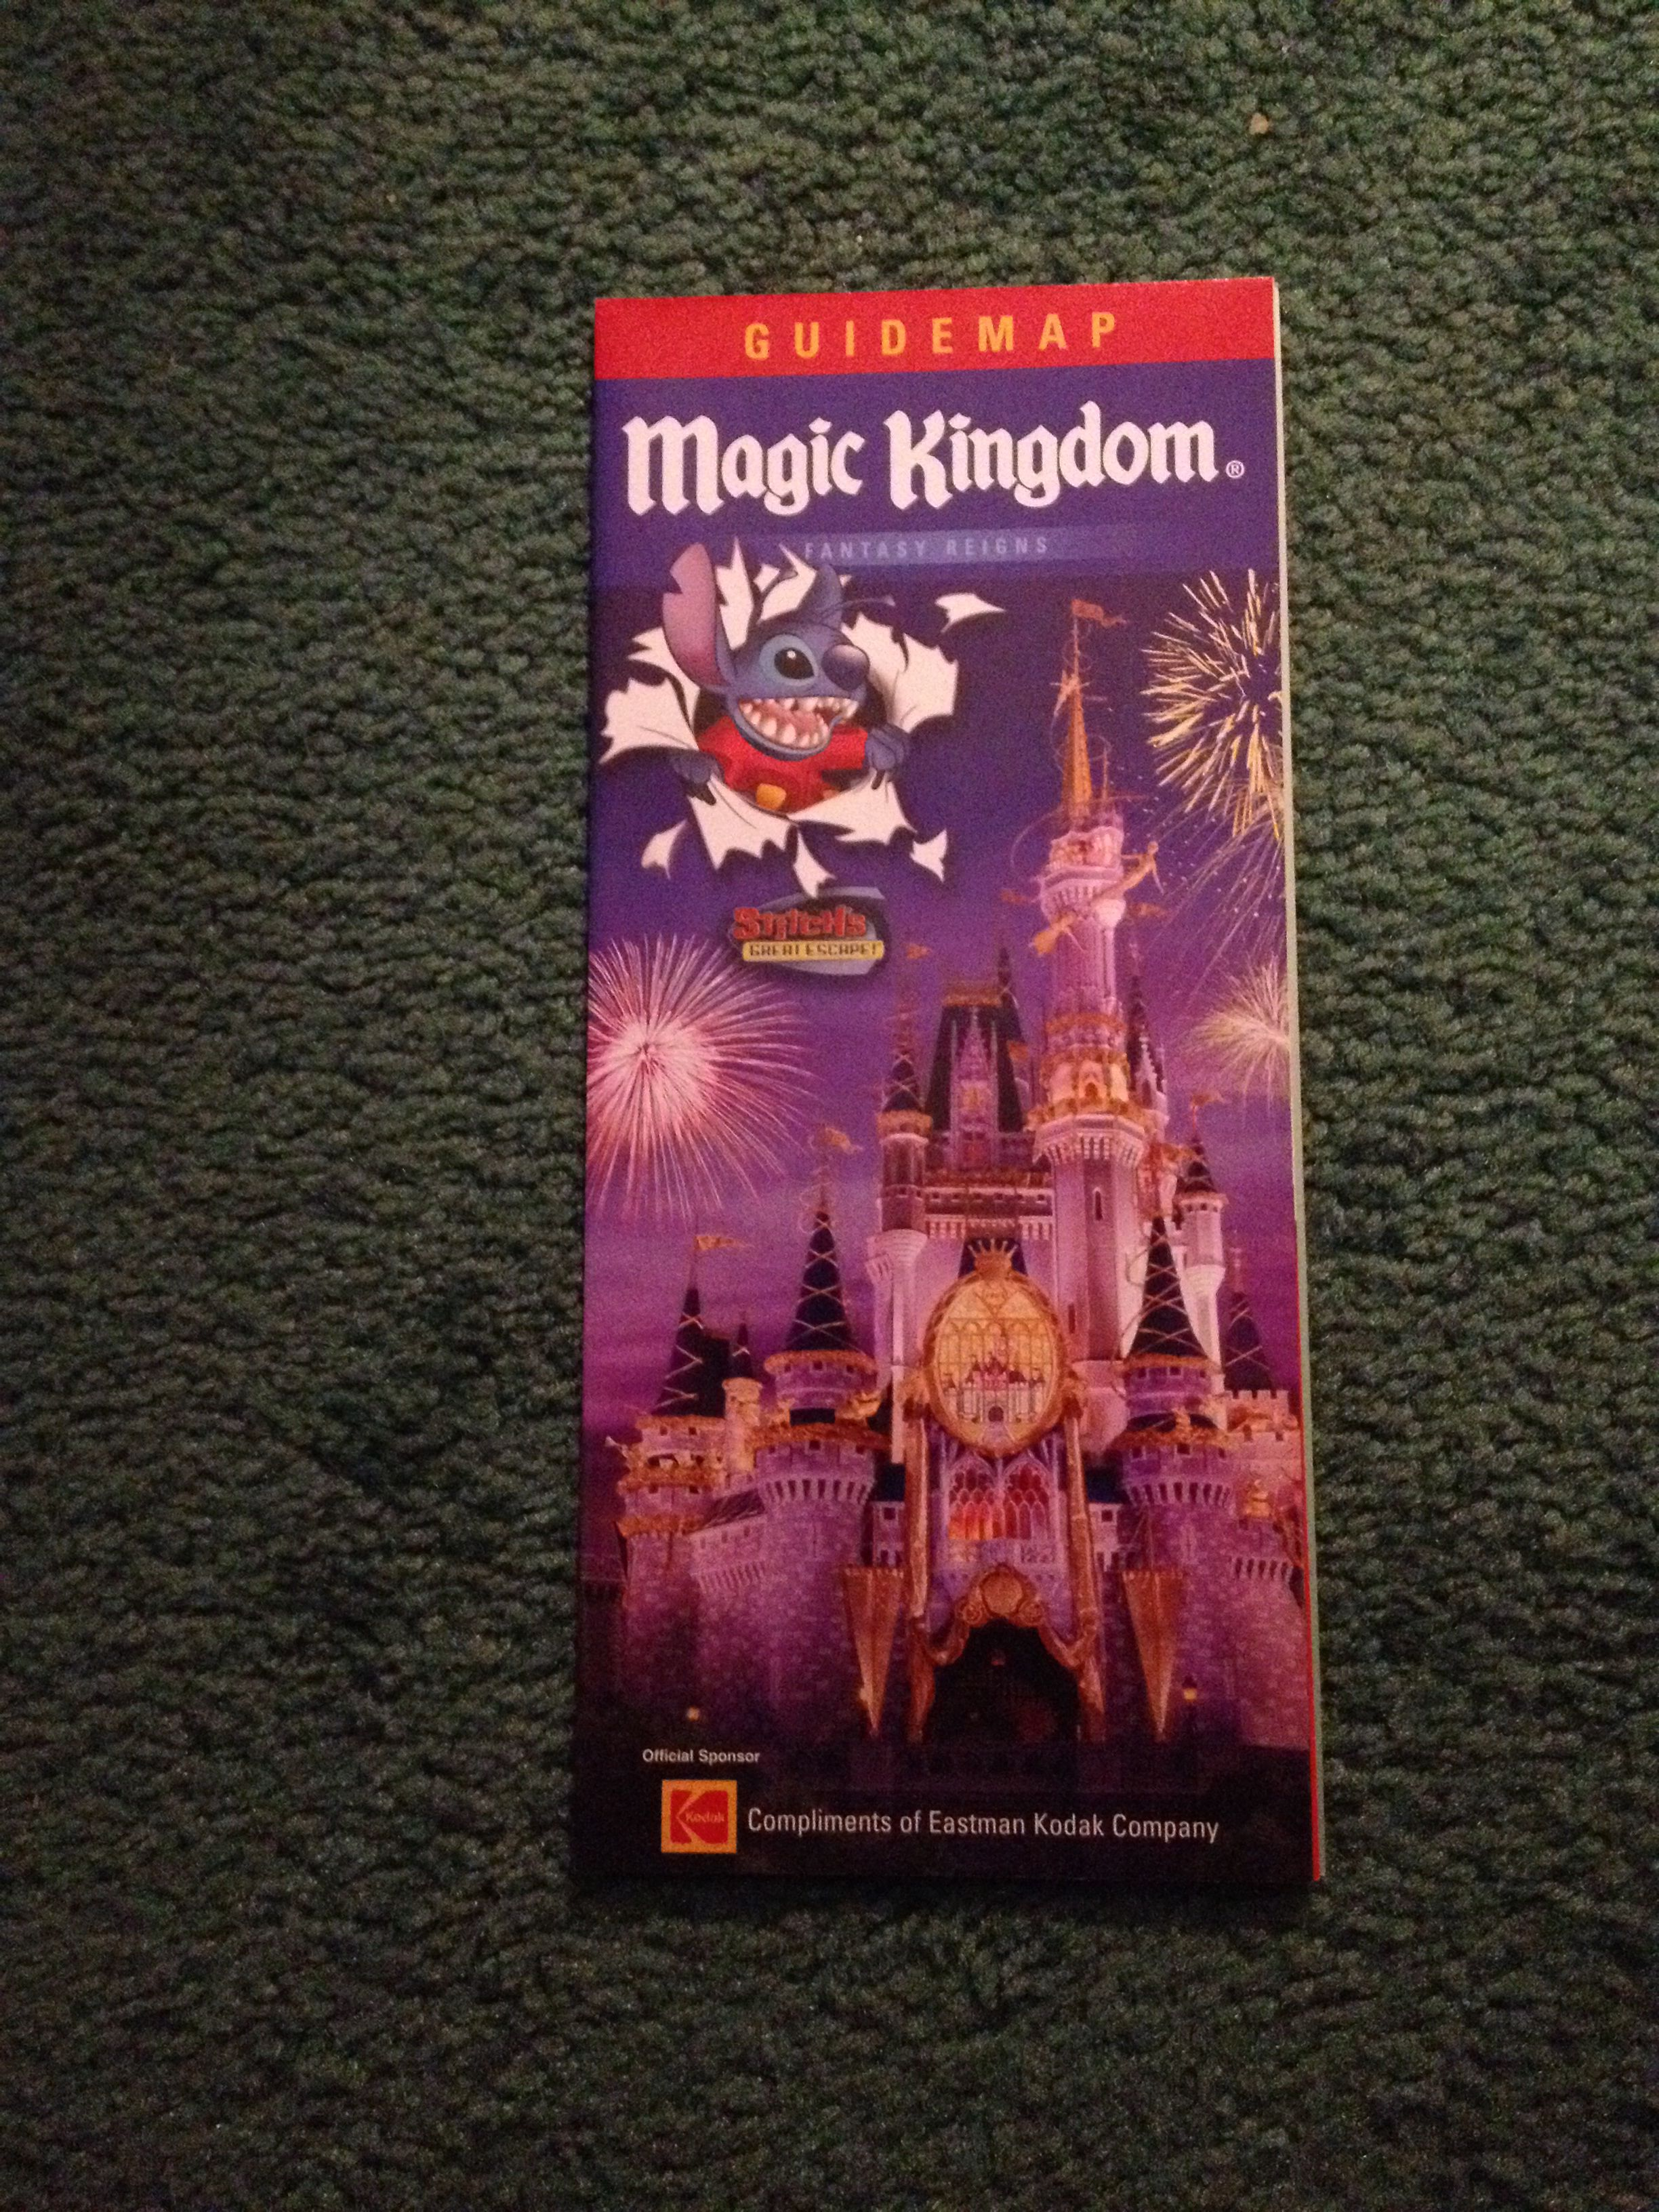 Wdw magic kingdom 2005 guide map Wdw